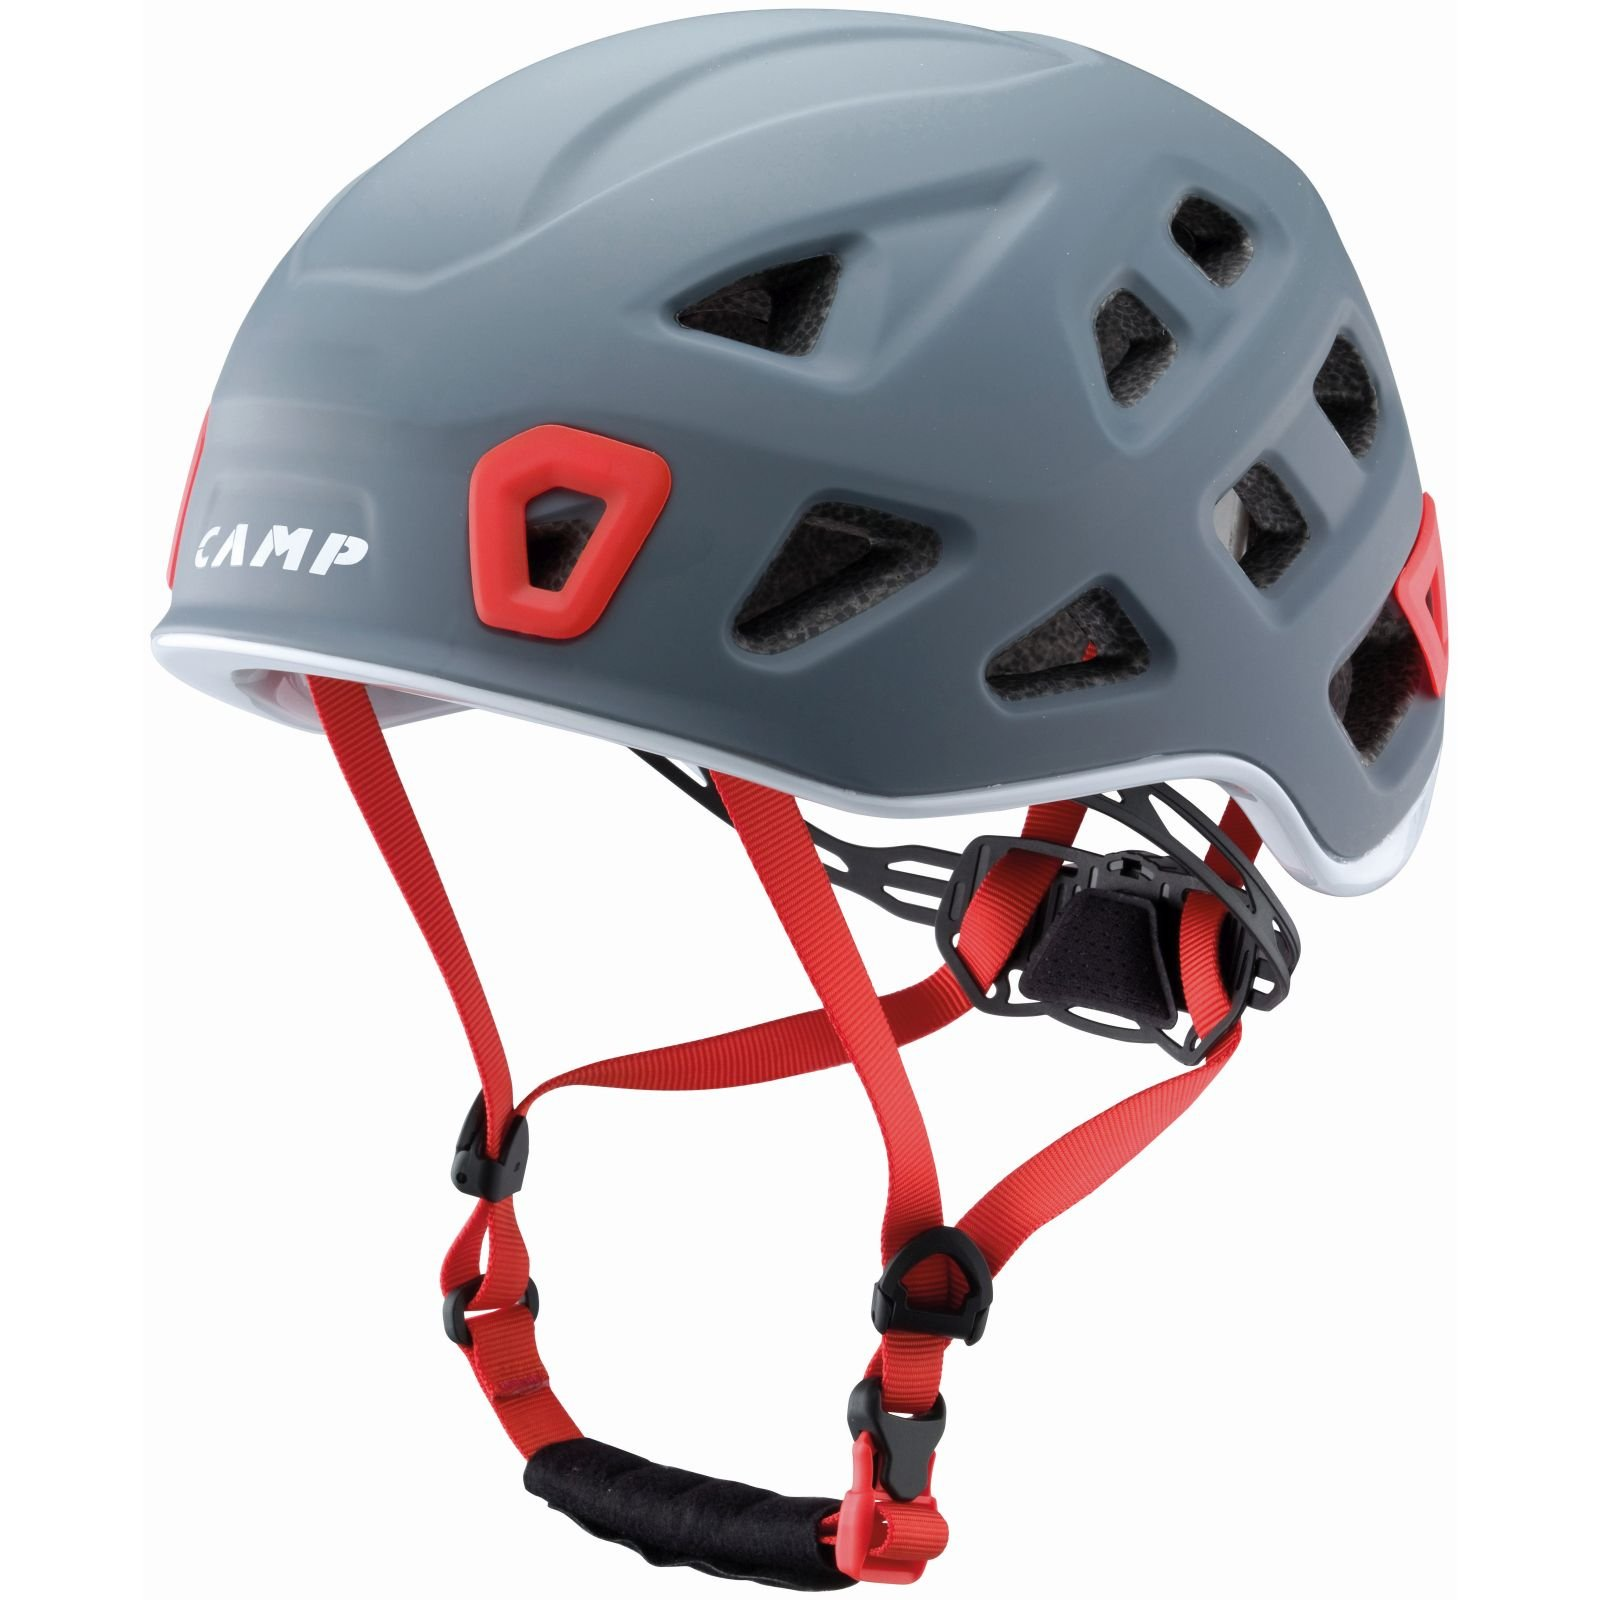 Camp Storm Helmet - L - Gray